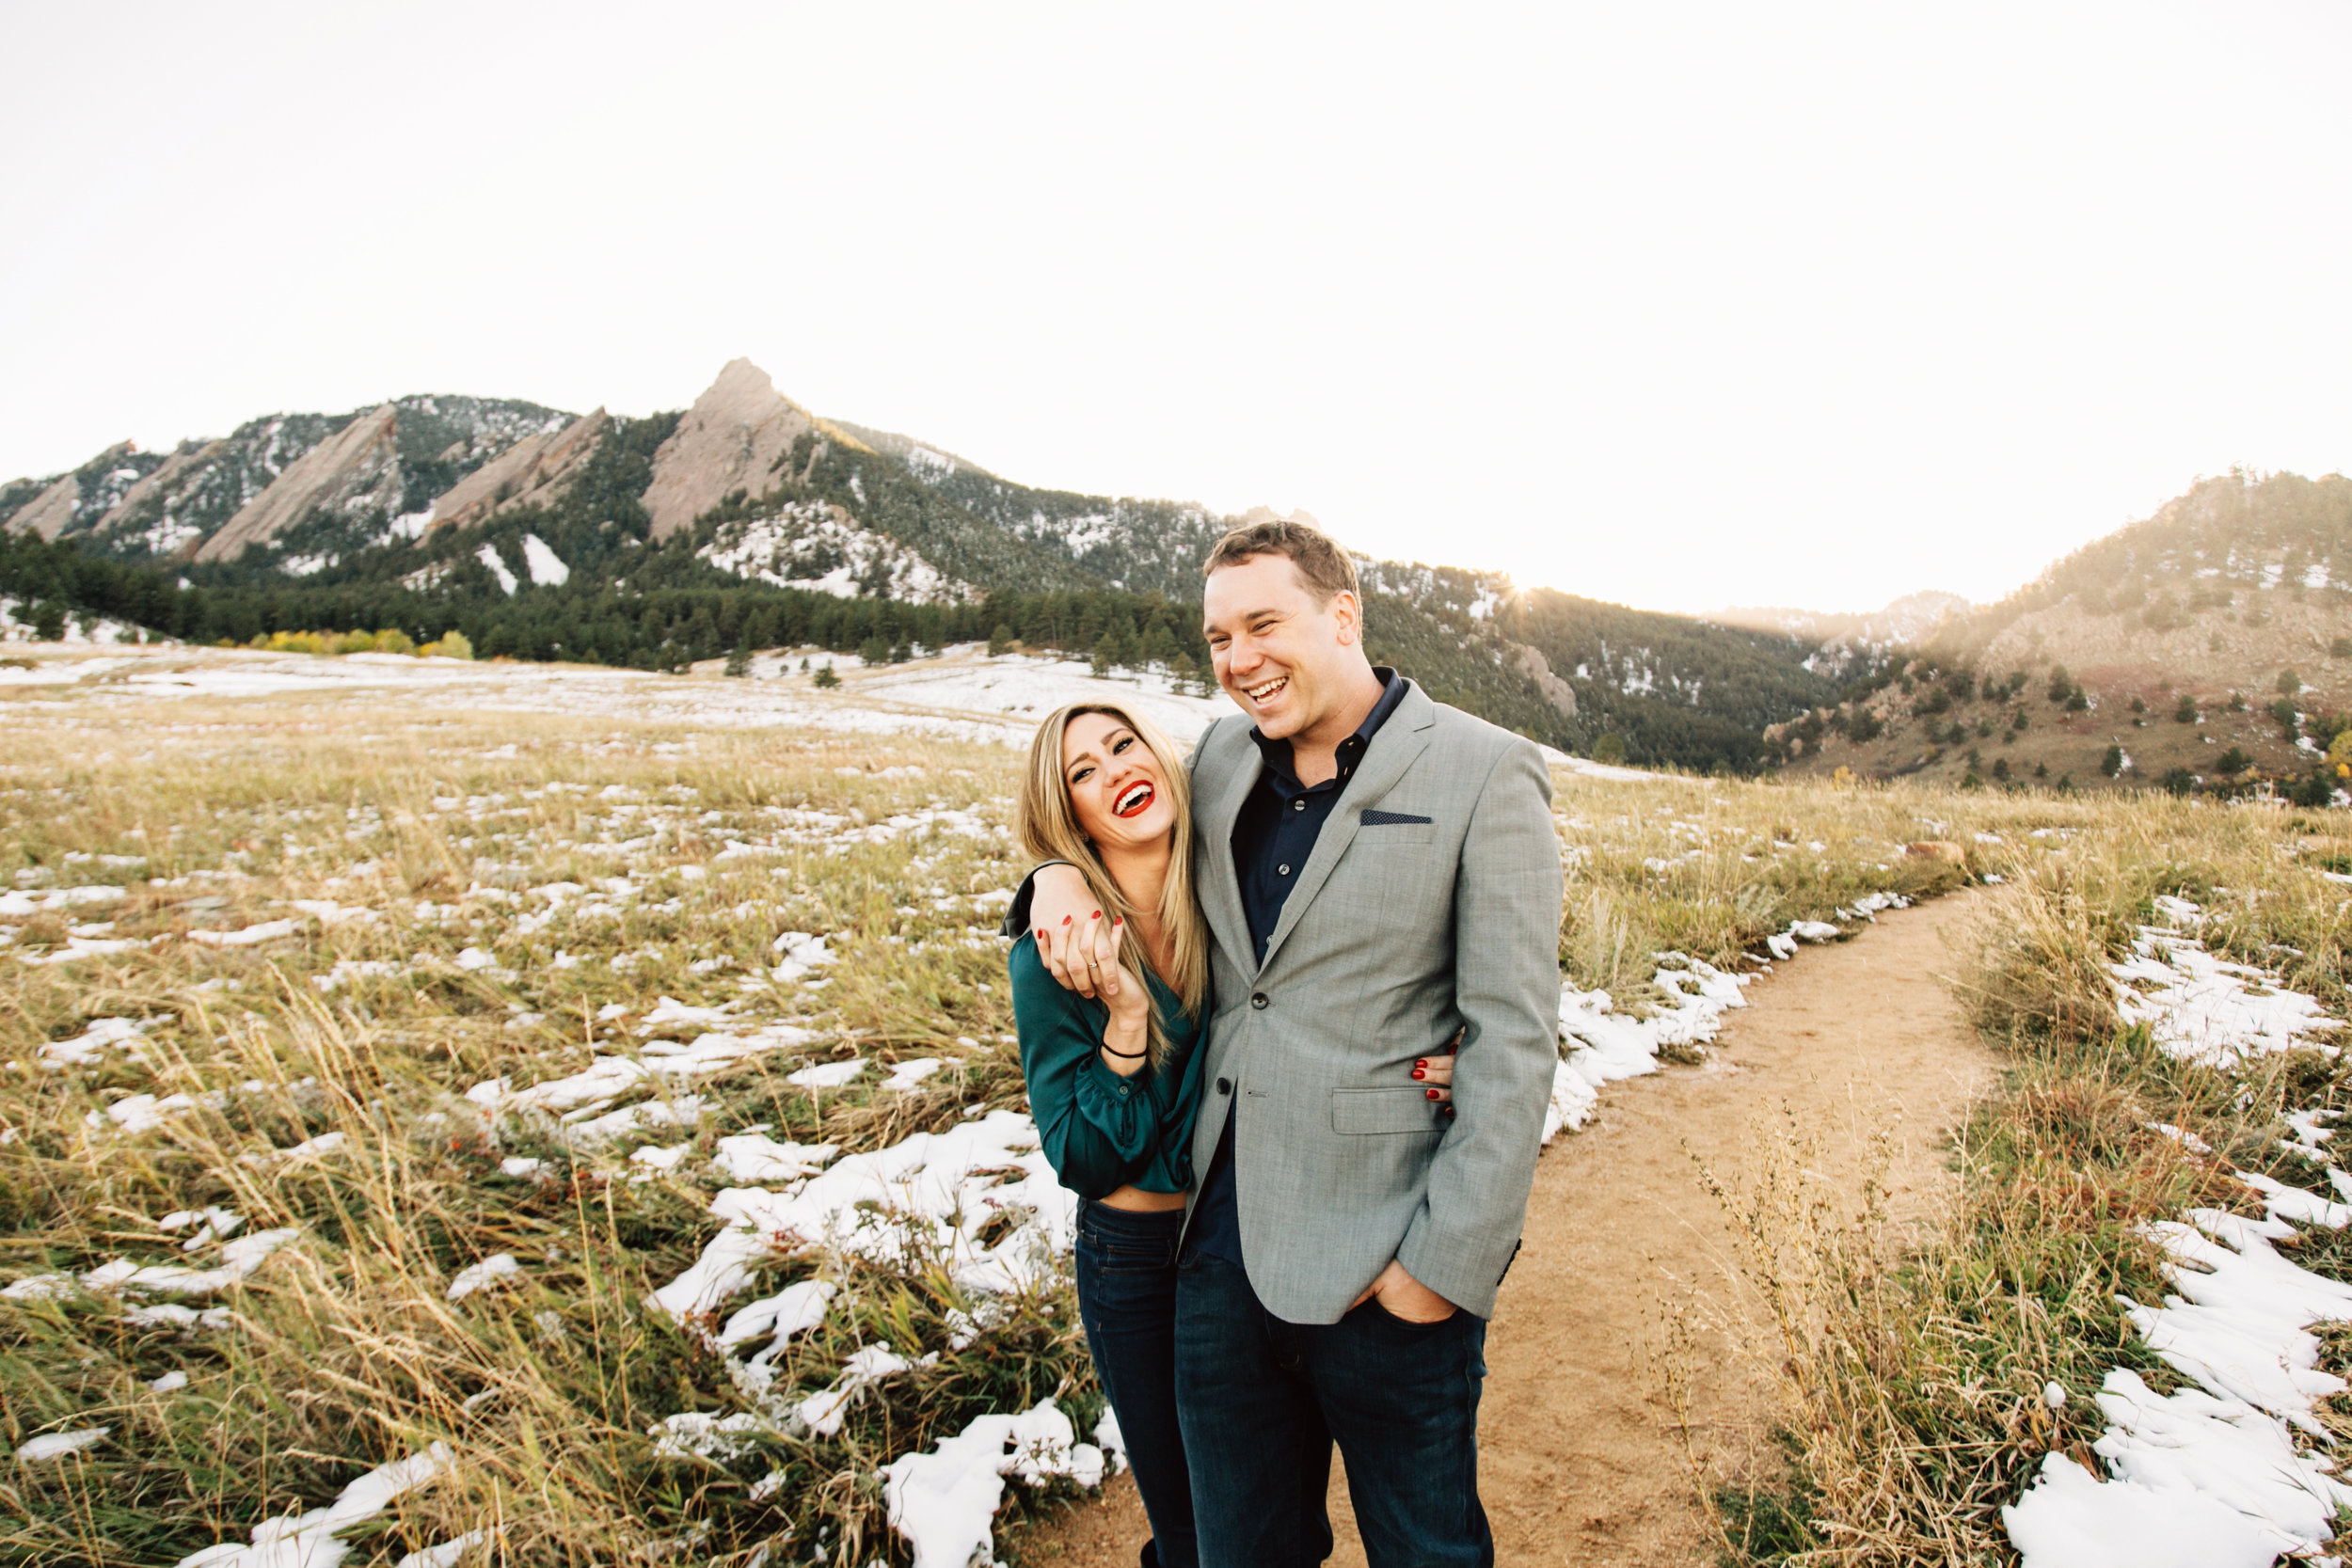 Colorado engagement-Katie Stoops Photography15.jpg